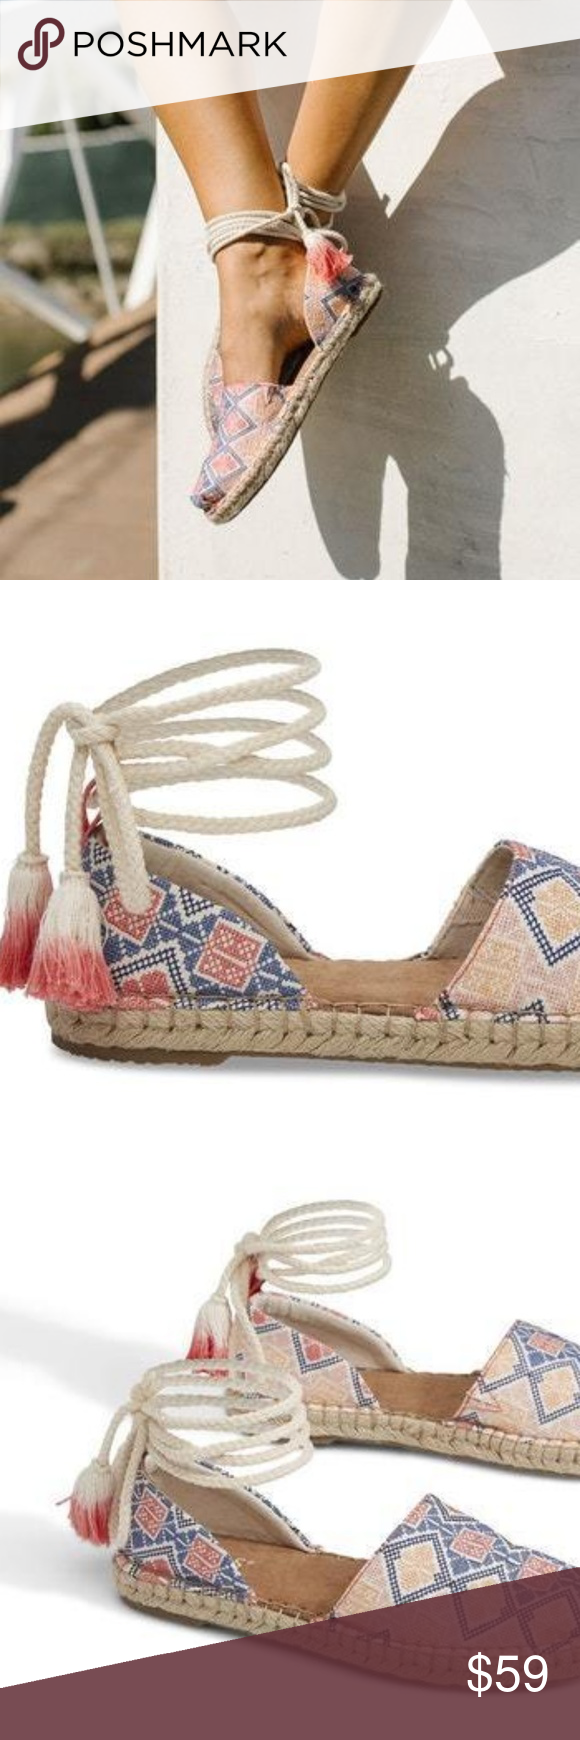 b6864257efb TOMS GEO EMBROIDERED WOMEN S KATALINA ESPADRILLES French Riviera is the  vacation that comes to mind when